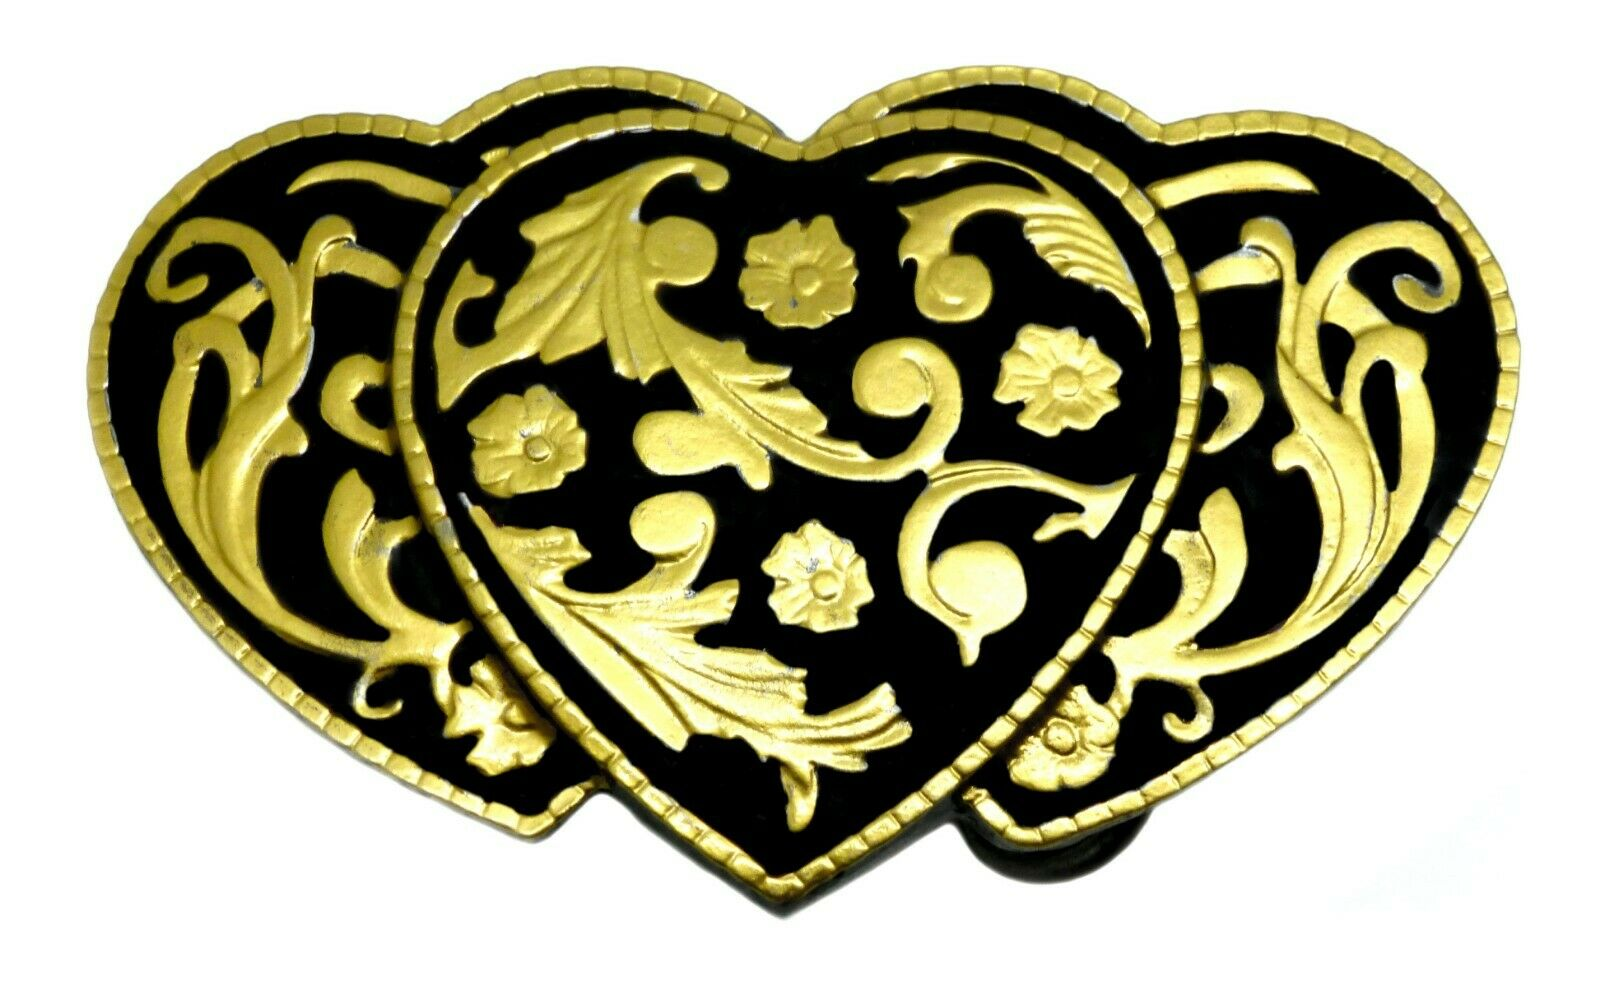 3 Hearts Belt Buckle American Black & Gold Western Floral Authentic White Wolf